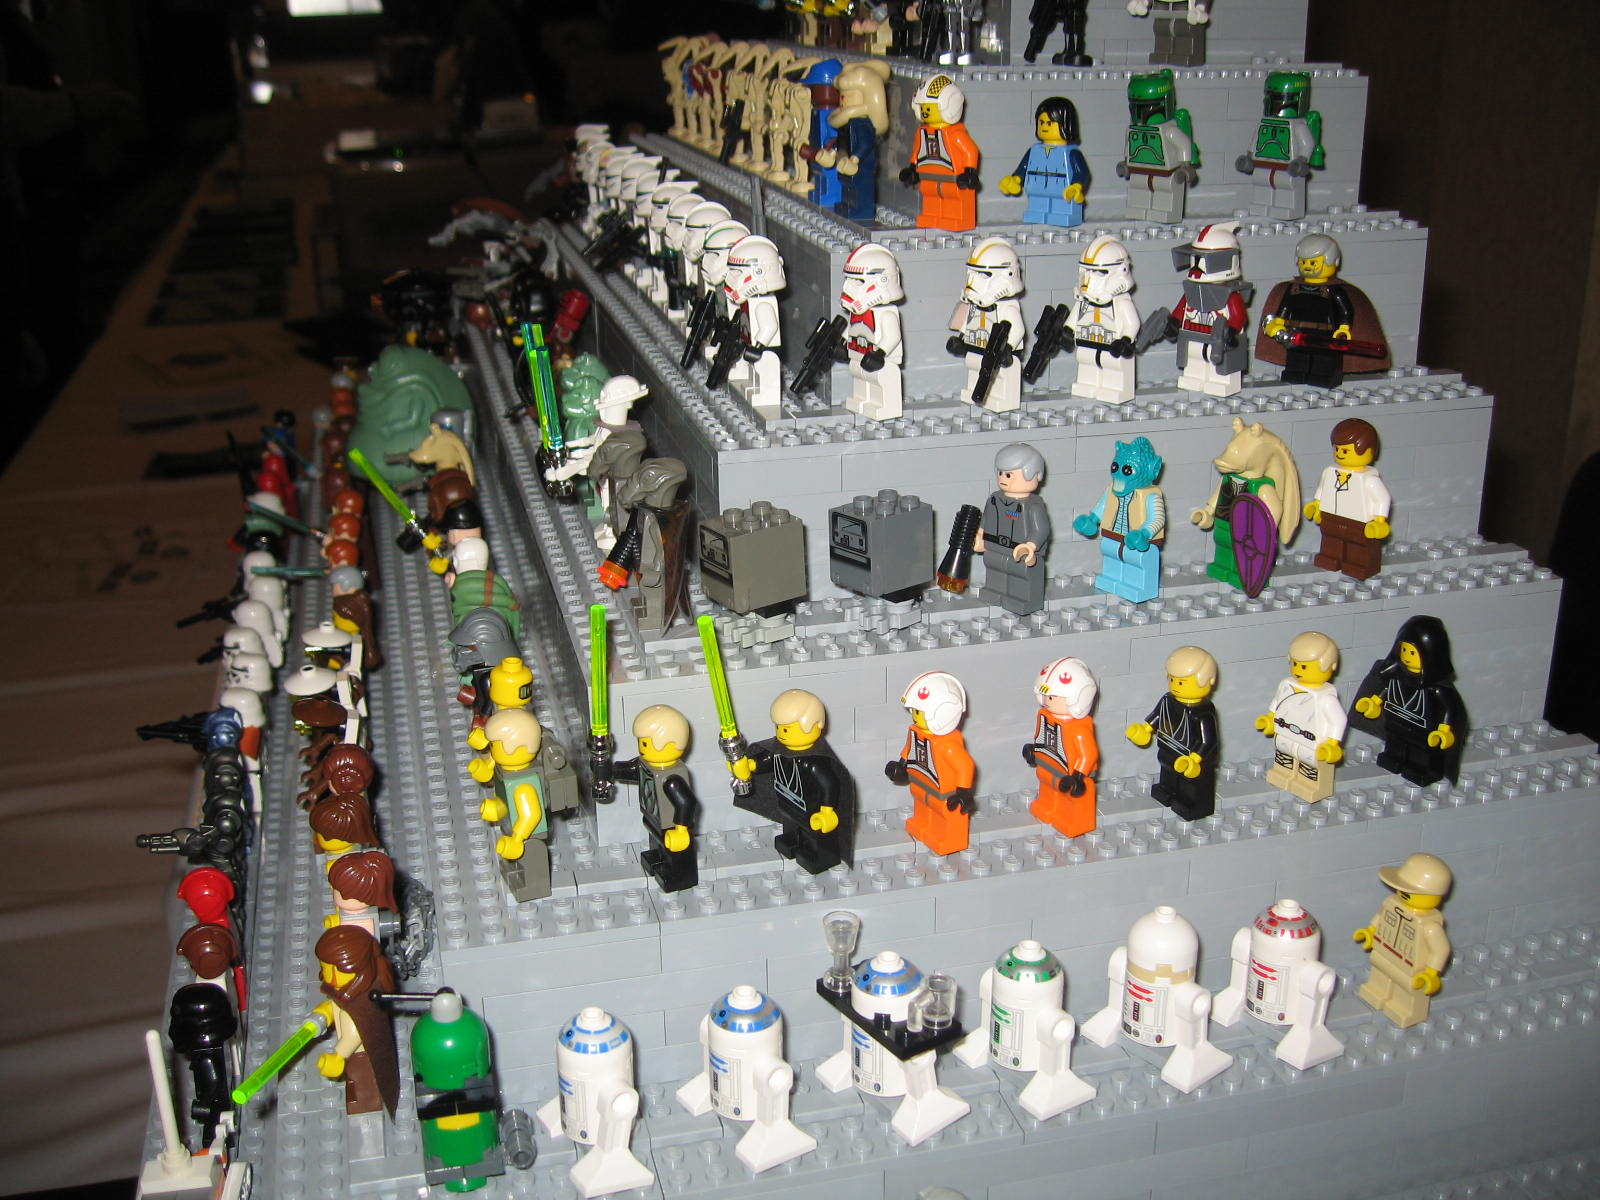 Re star wars minifigures on display